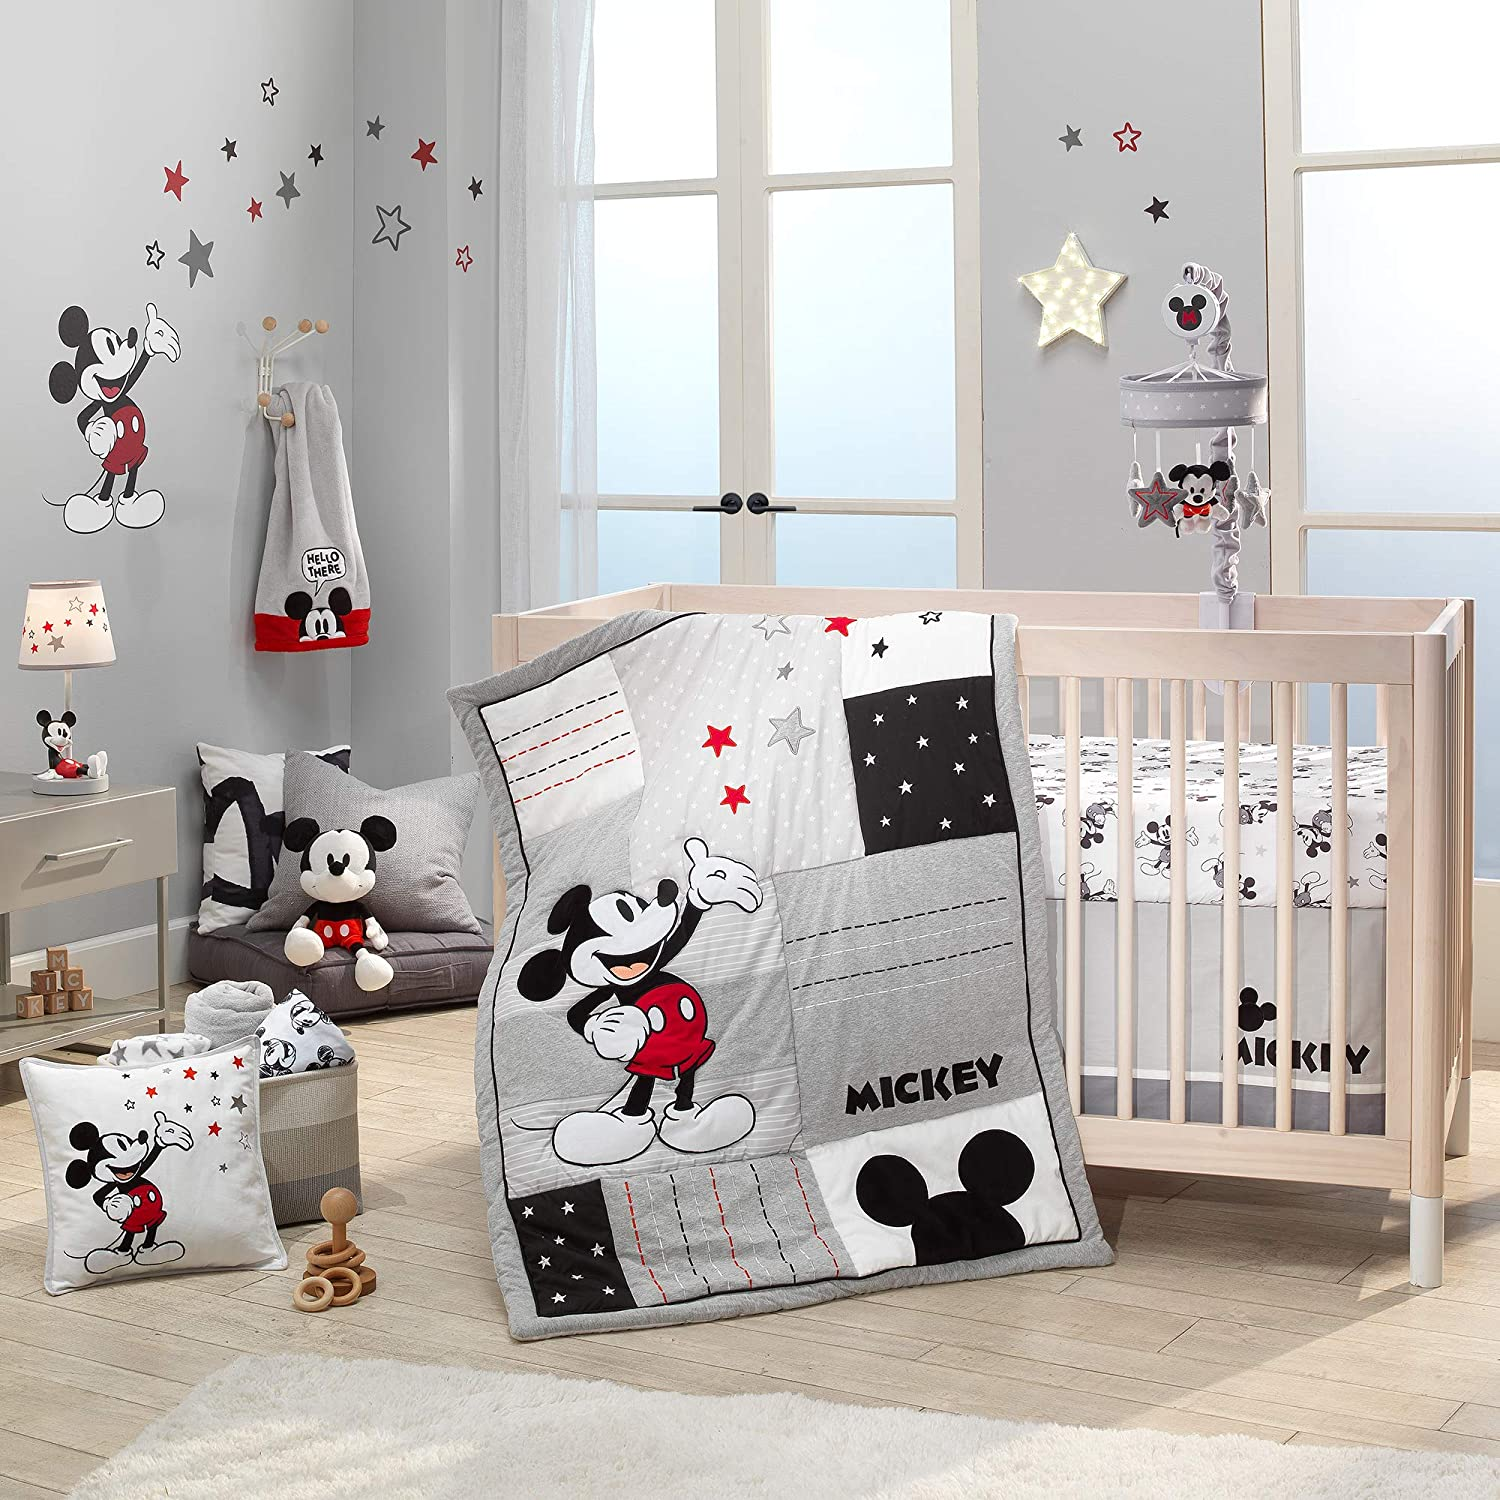 Lambs & Ivy Disney Baby Magical Mickey Mouse 3-Piece Crib Bedding Set - Gray